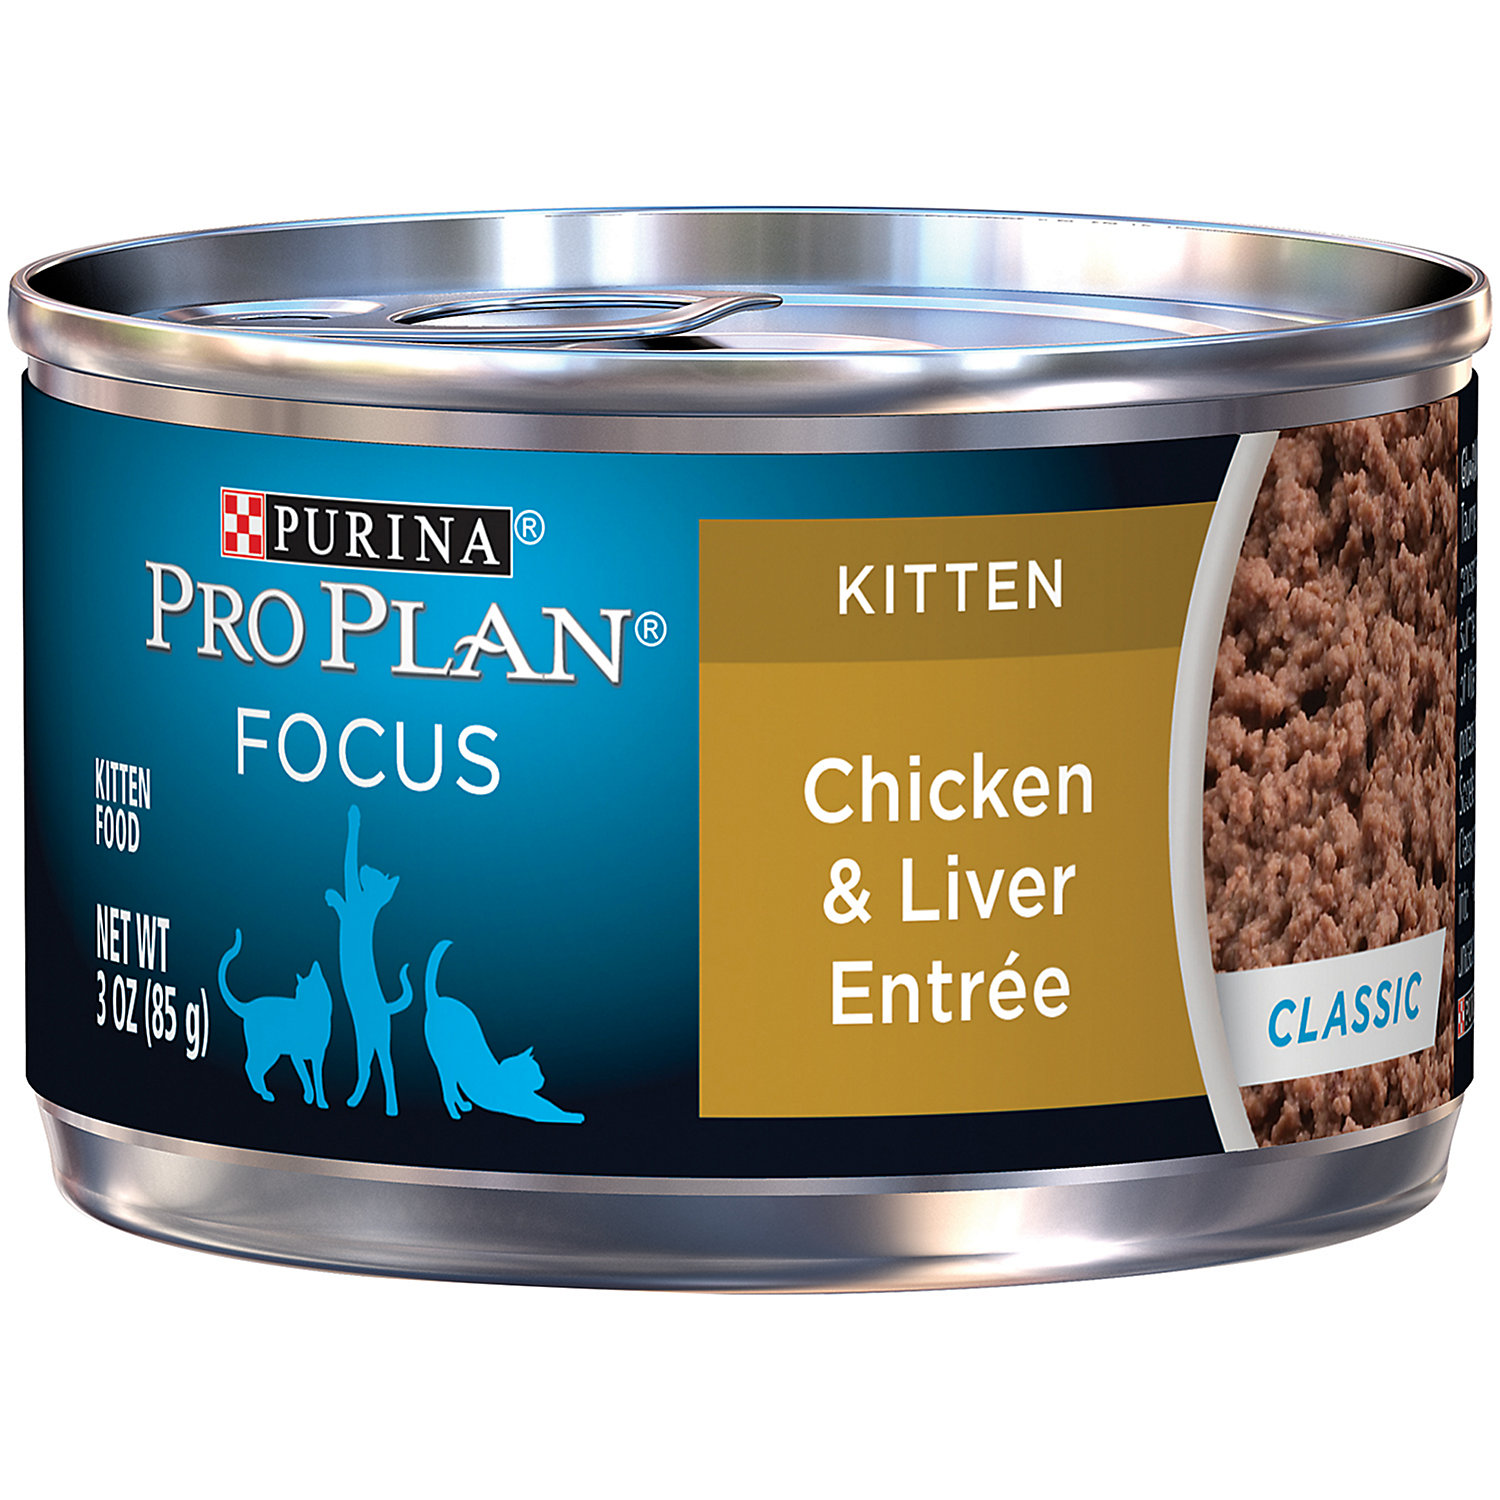 Pro Plan Focus Chicken Liver Canned Kitten Food 3 Oz. Case Of 24